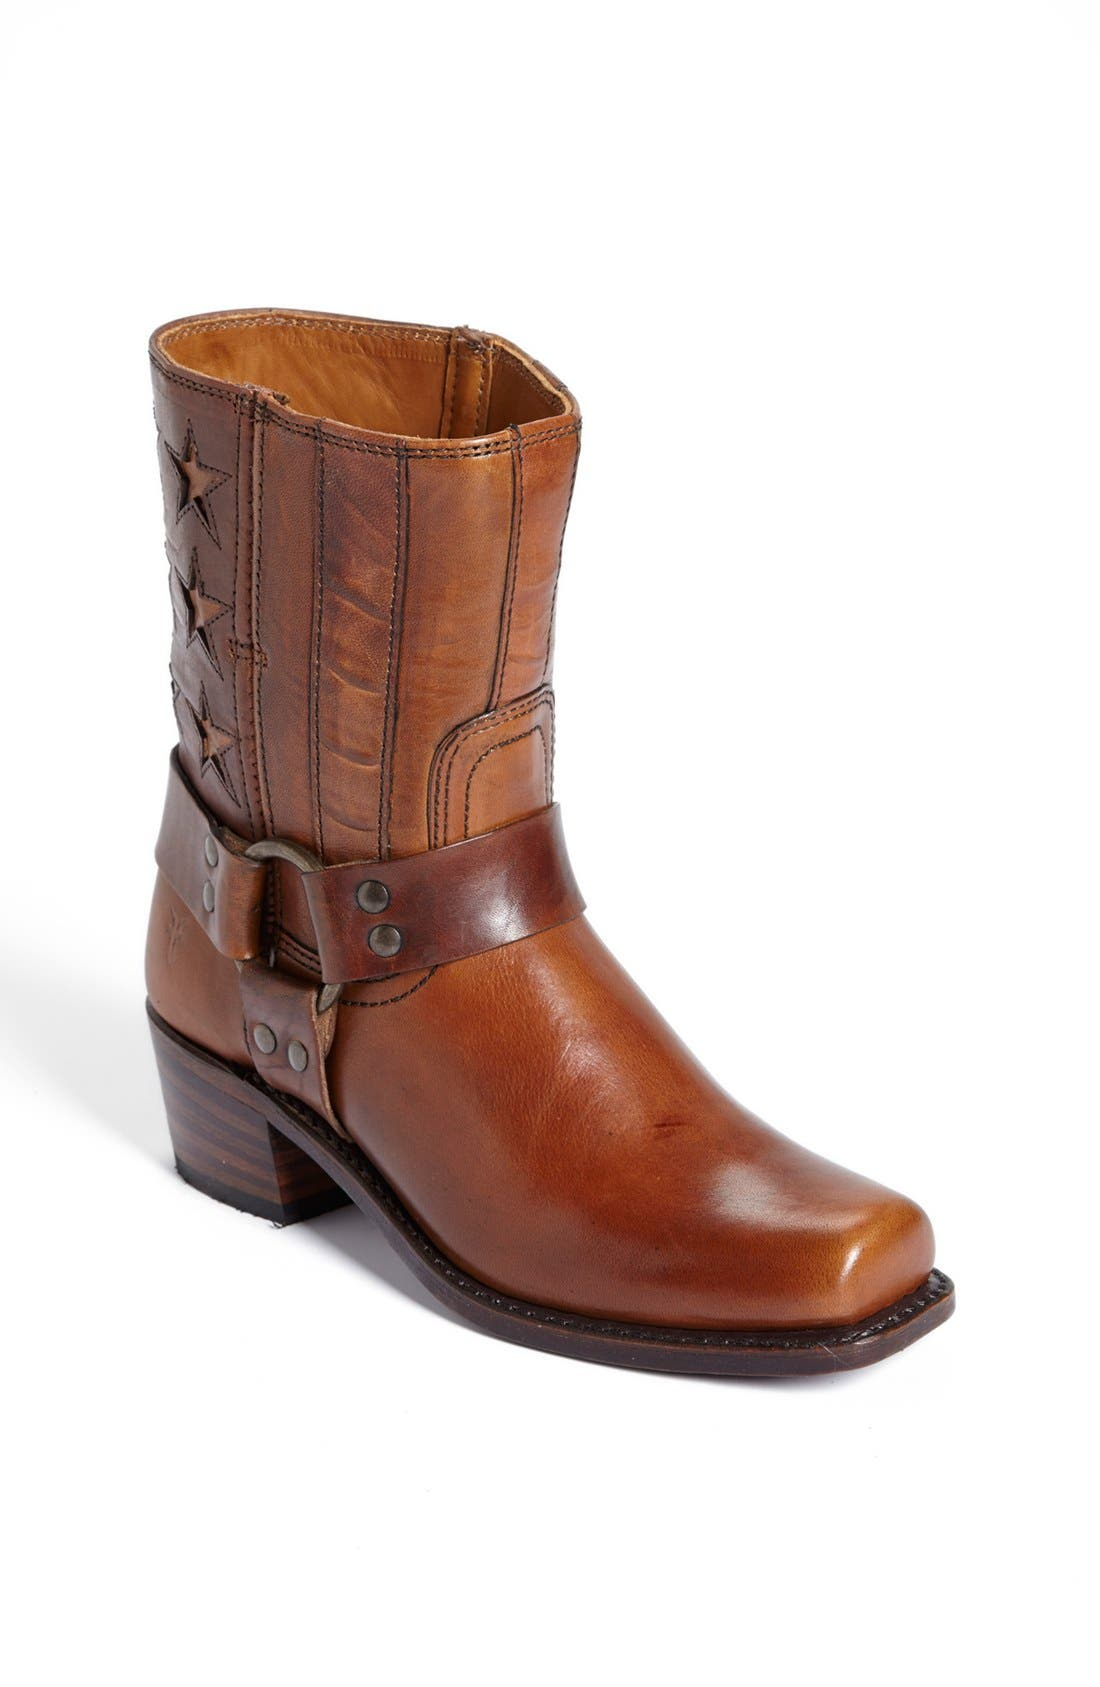 Alternate Image 1 Selected - Frye 'Harness Americana' Bootie (Limited Edition)